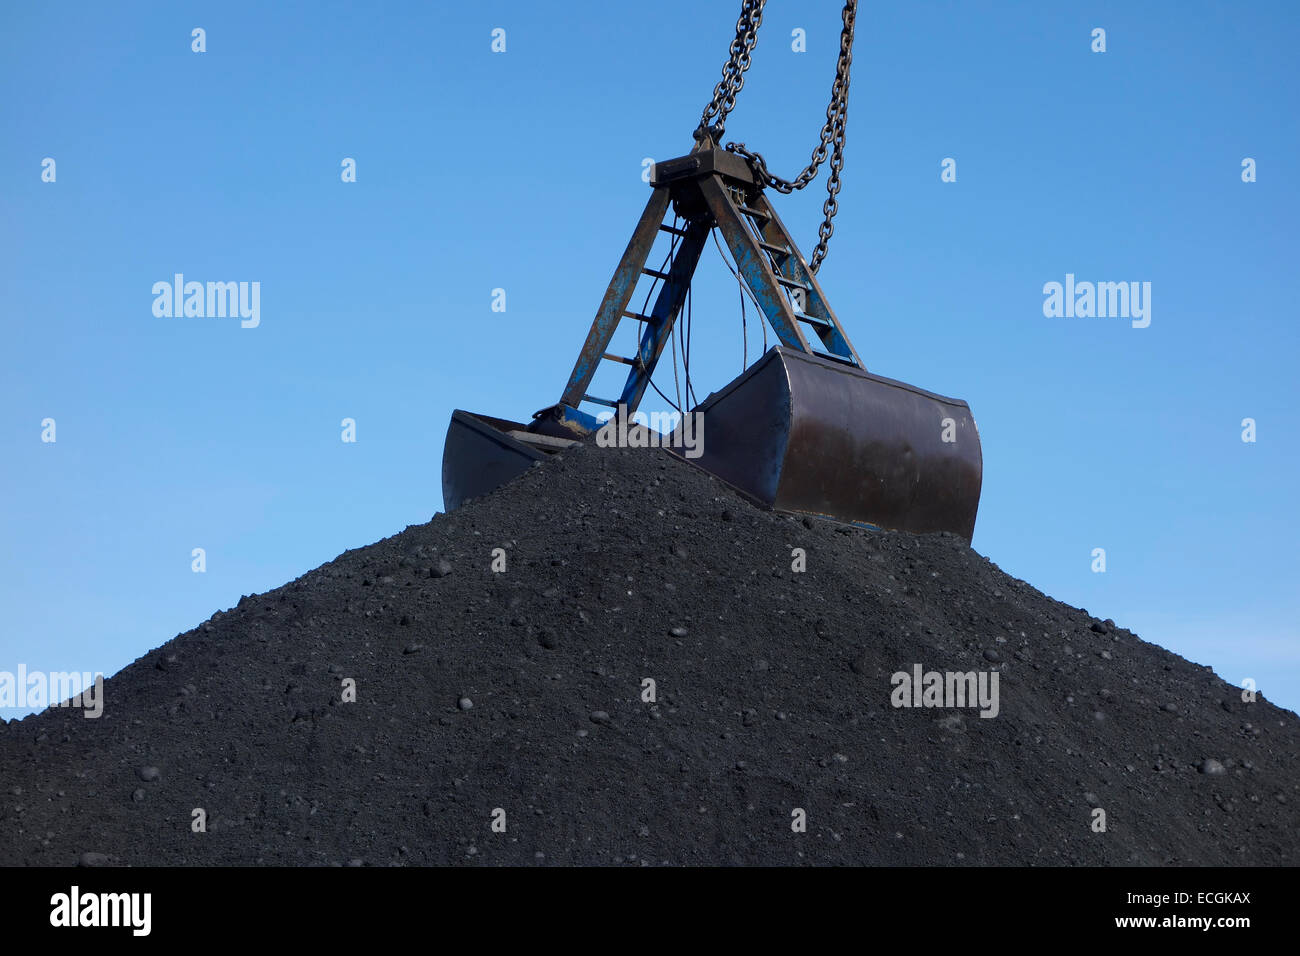 The top of a huge coal pile with clamshell bucket - Stock Image